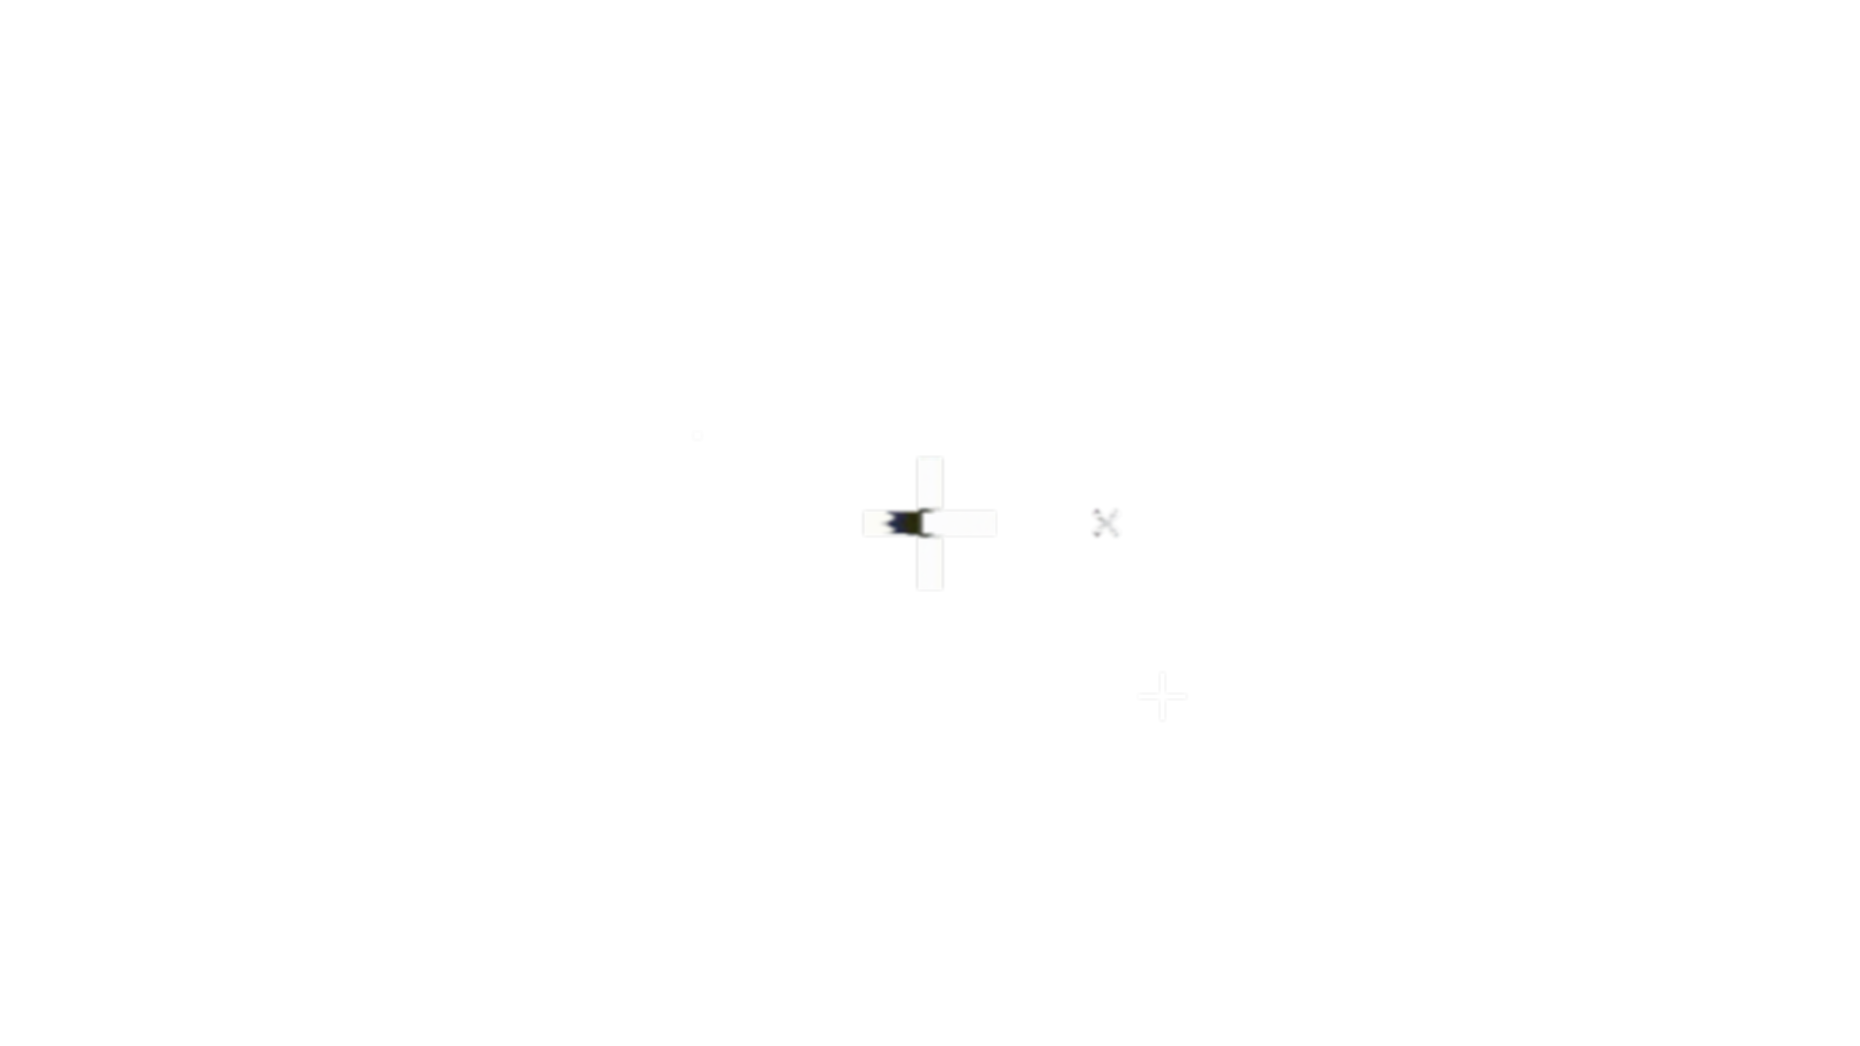 cool-shit-03-v01.png